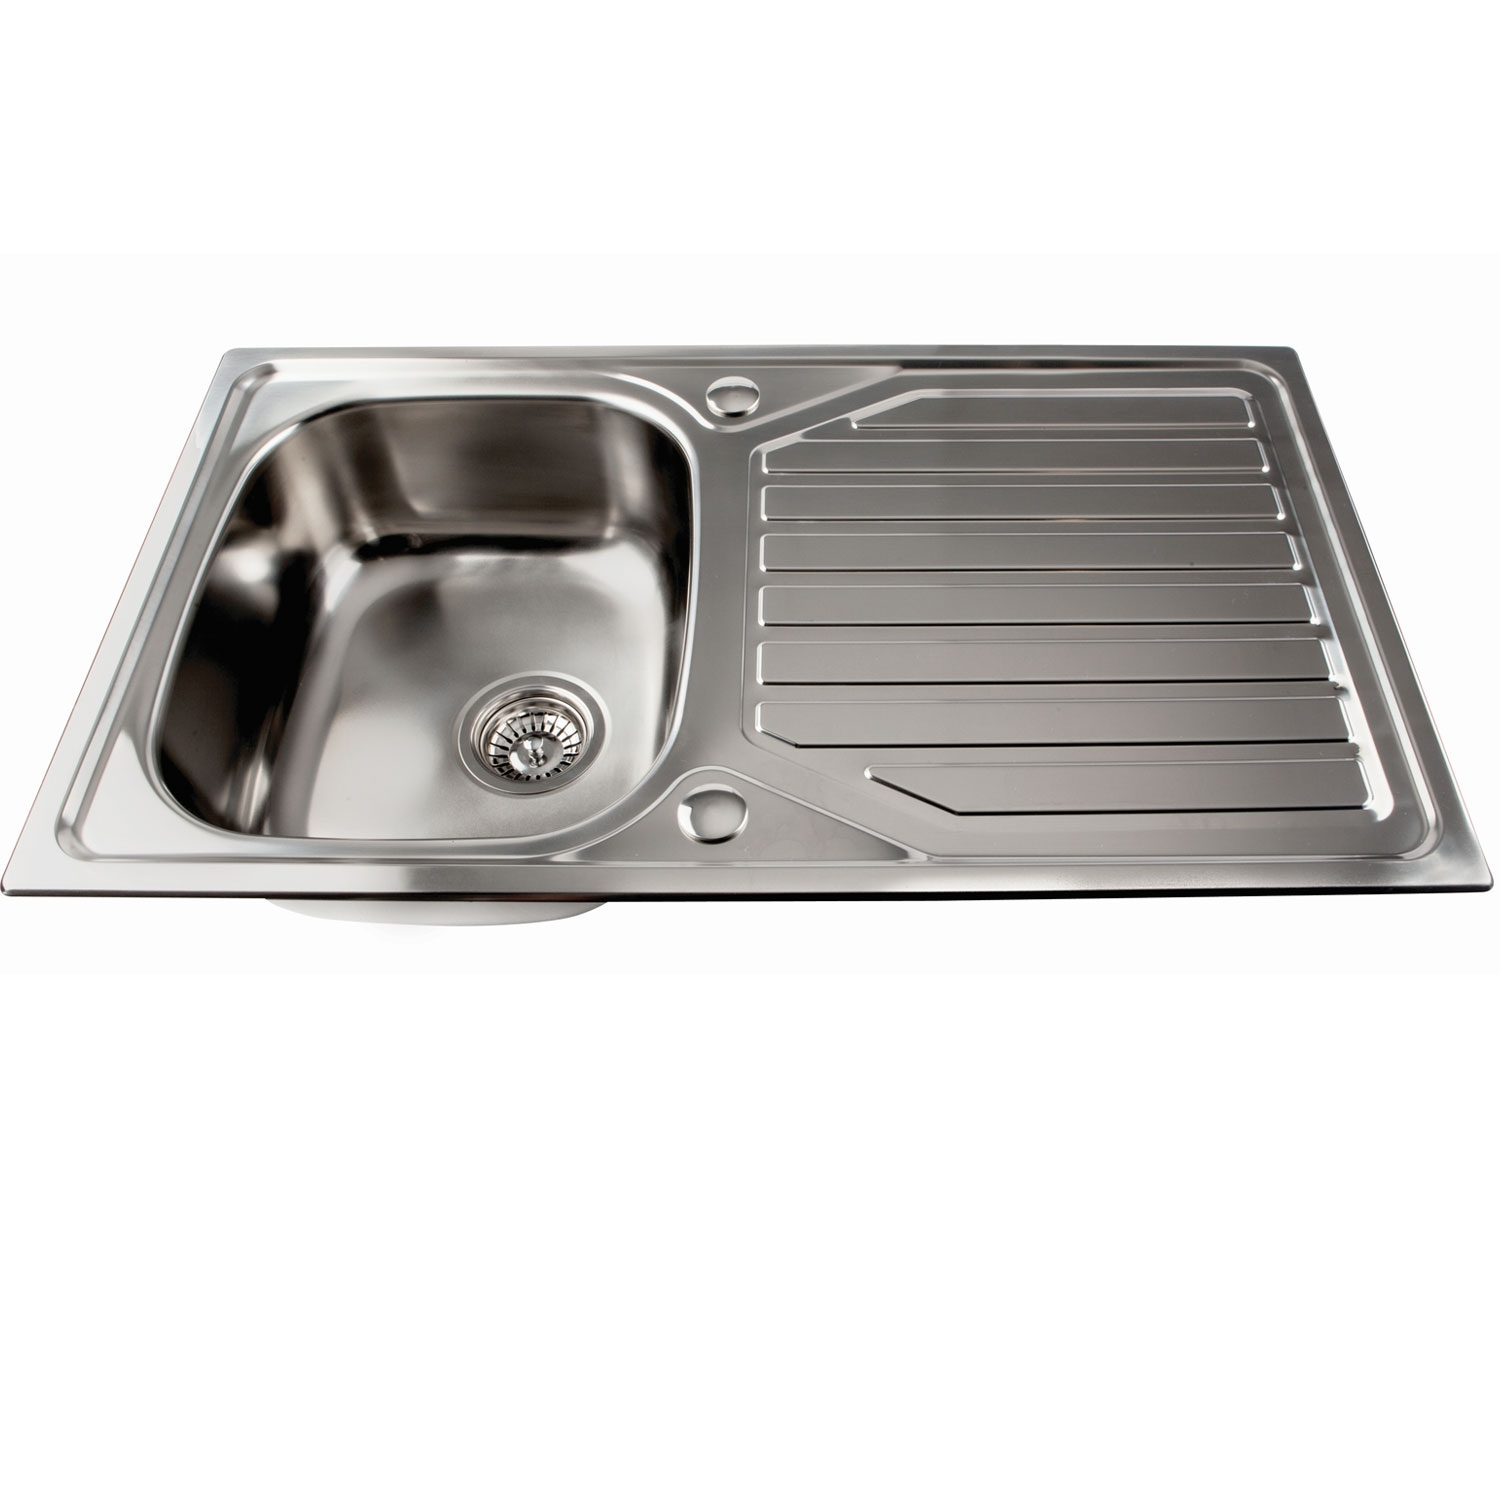 The 1810 Company Veloreuno 860i 1.0 Bowl Kitchen Sink - Stainless Steel